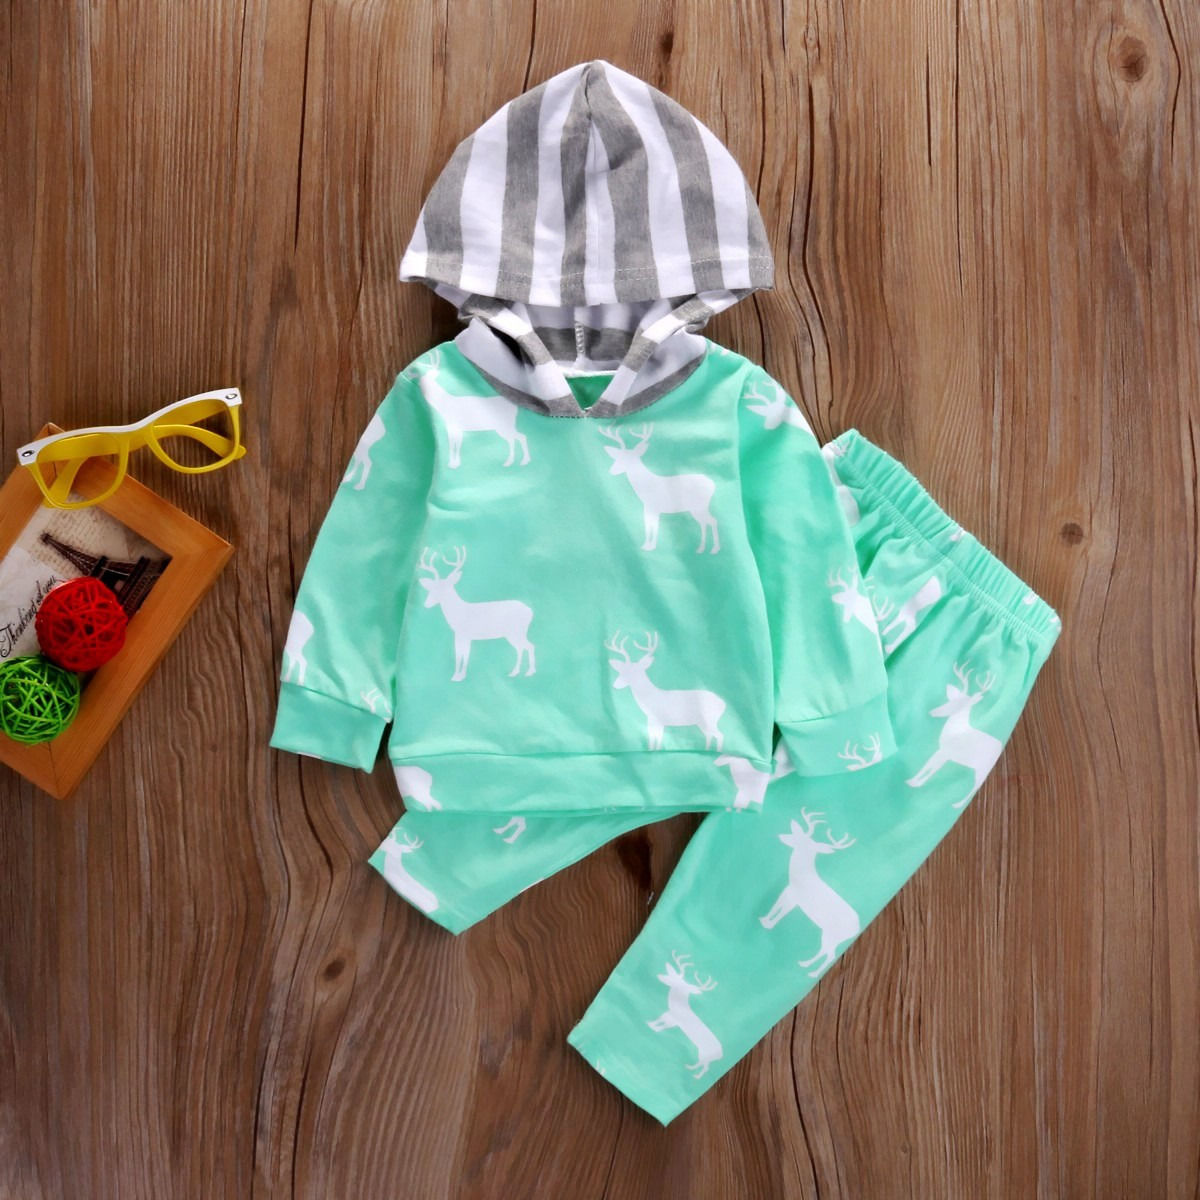 Autumn Casual Newborn Baby Boy Girl Deer Hooded Tops Coat and Pants 2PCS Outfits Set Clothes Blue 0-24M